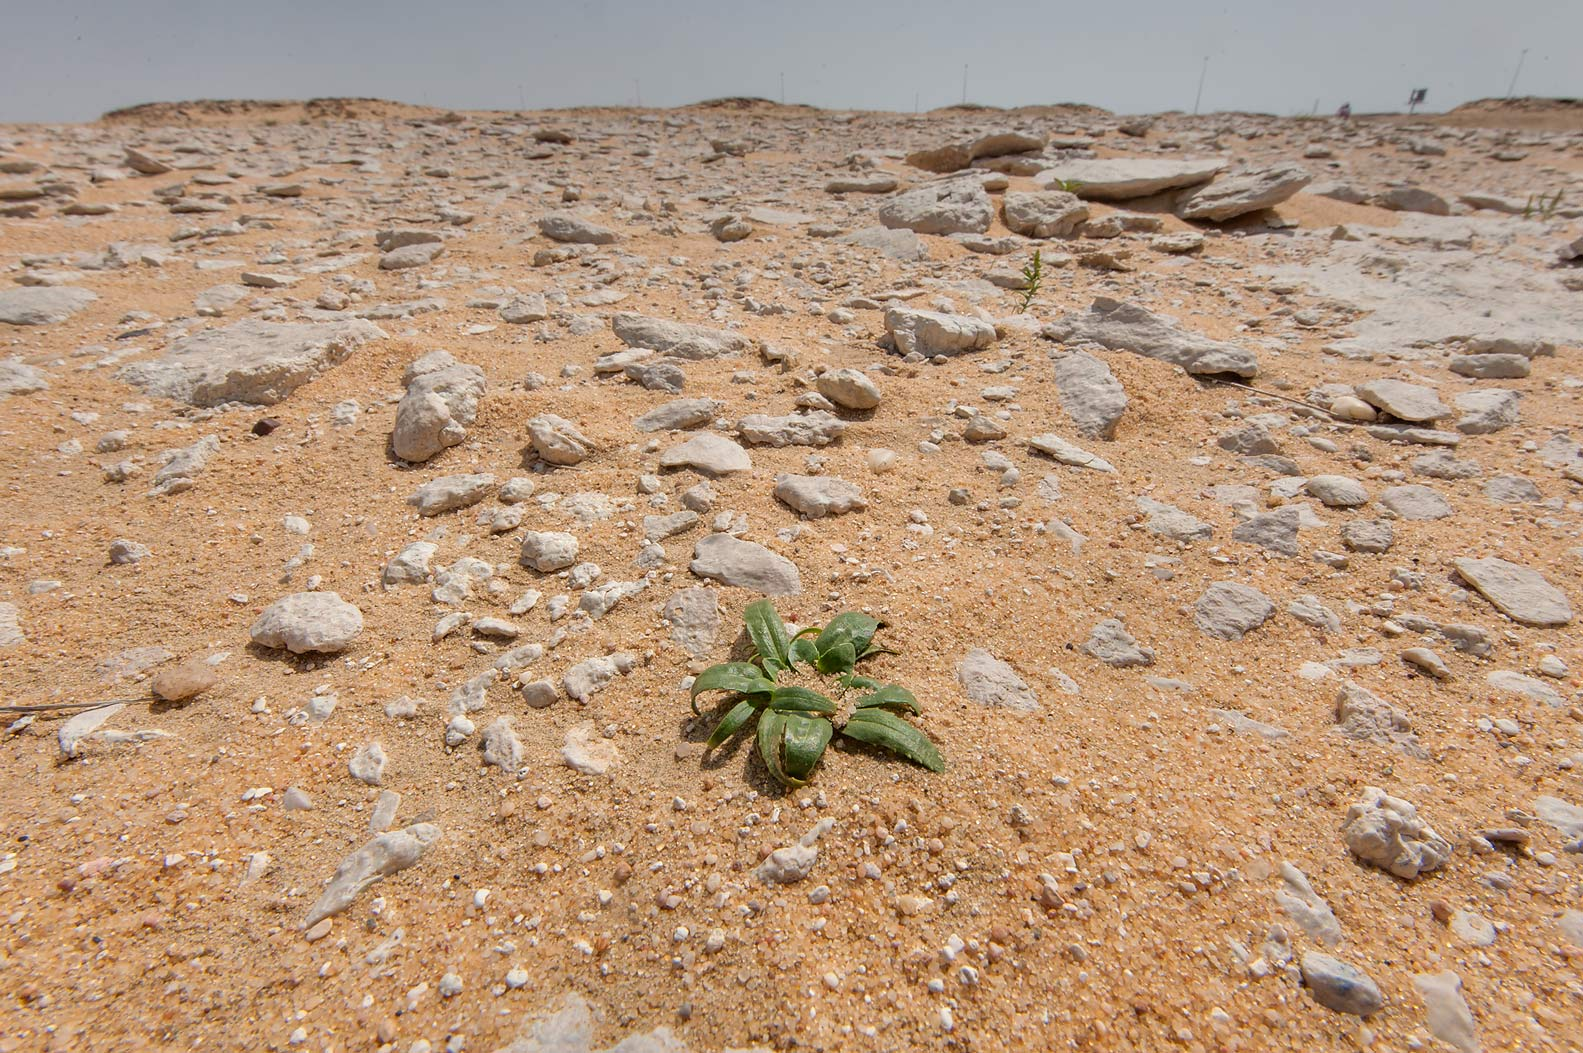 Habitat of Dog's Paw plant (Camel's Eye...an Nakhsh) in south-western Qatar